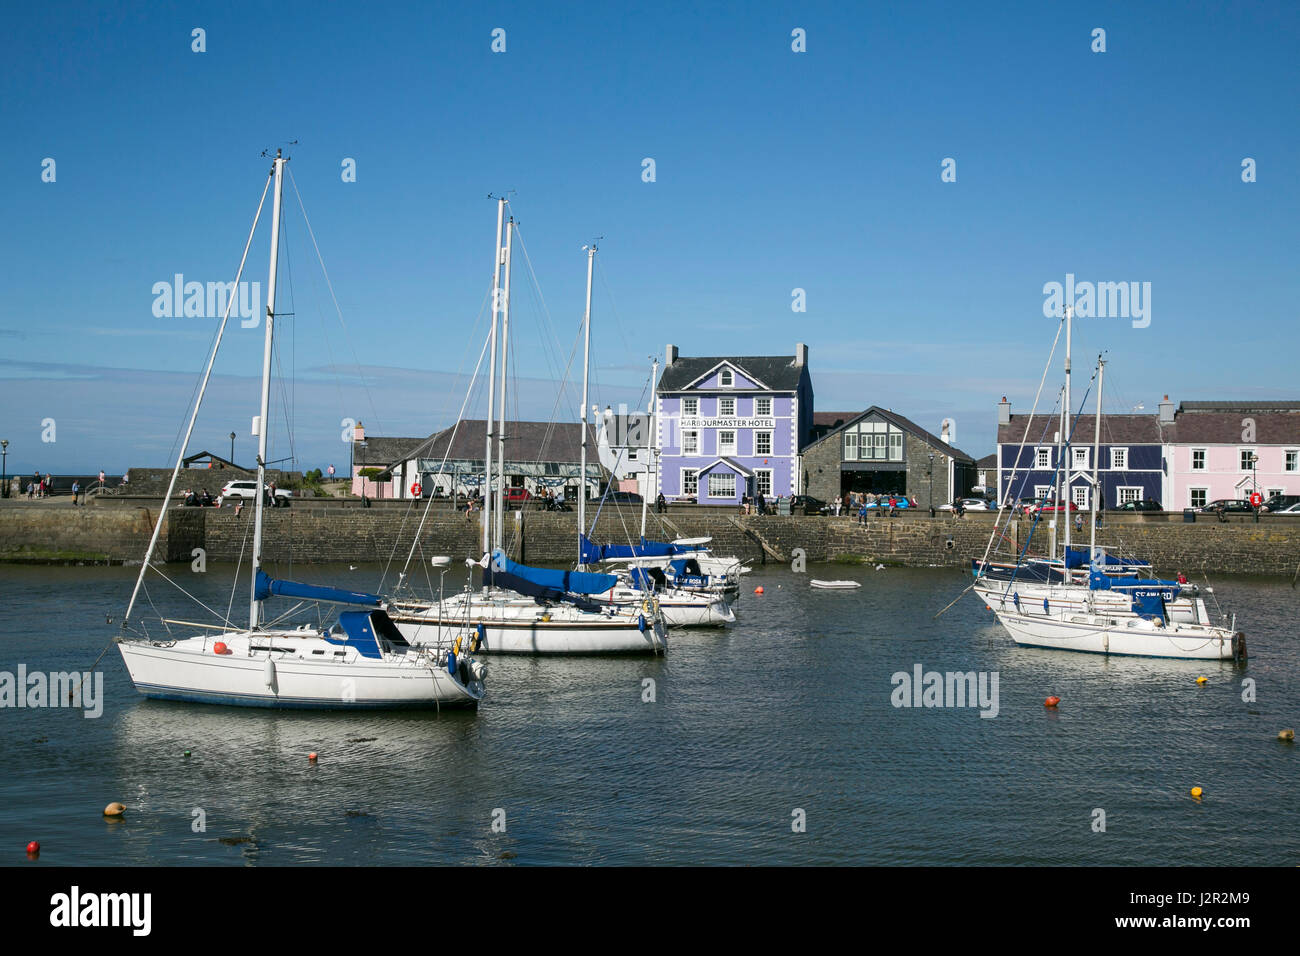 Aberaeron - a charming Georgian port town on the Cardigan Bay coast of West Wales, Sailing Boats and Fishing Boats - Stock Image